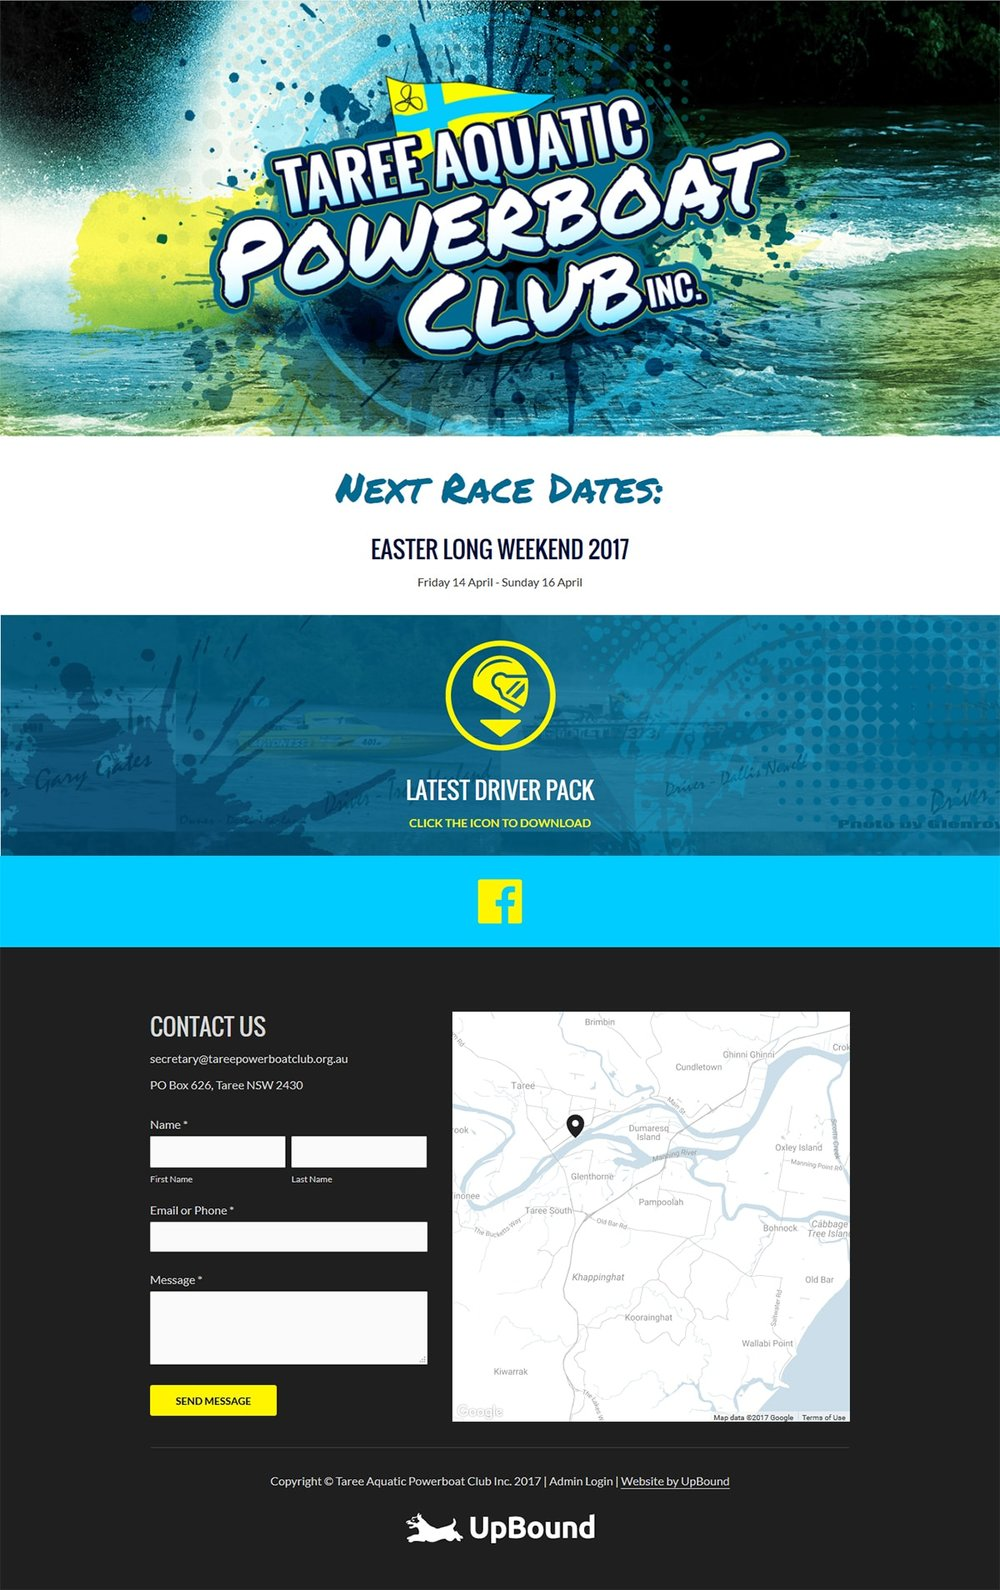 The Taree Aquatic Powerboat Club Homepage - a sample of the website design.